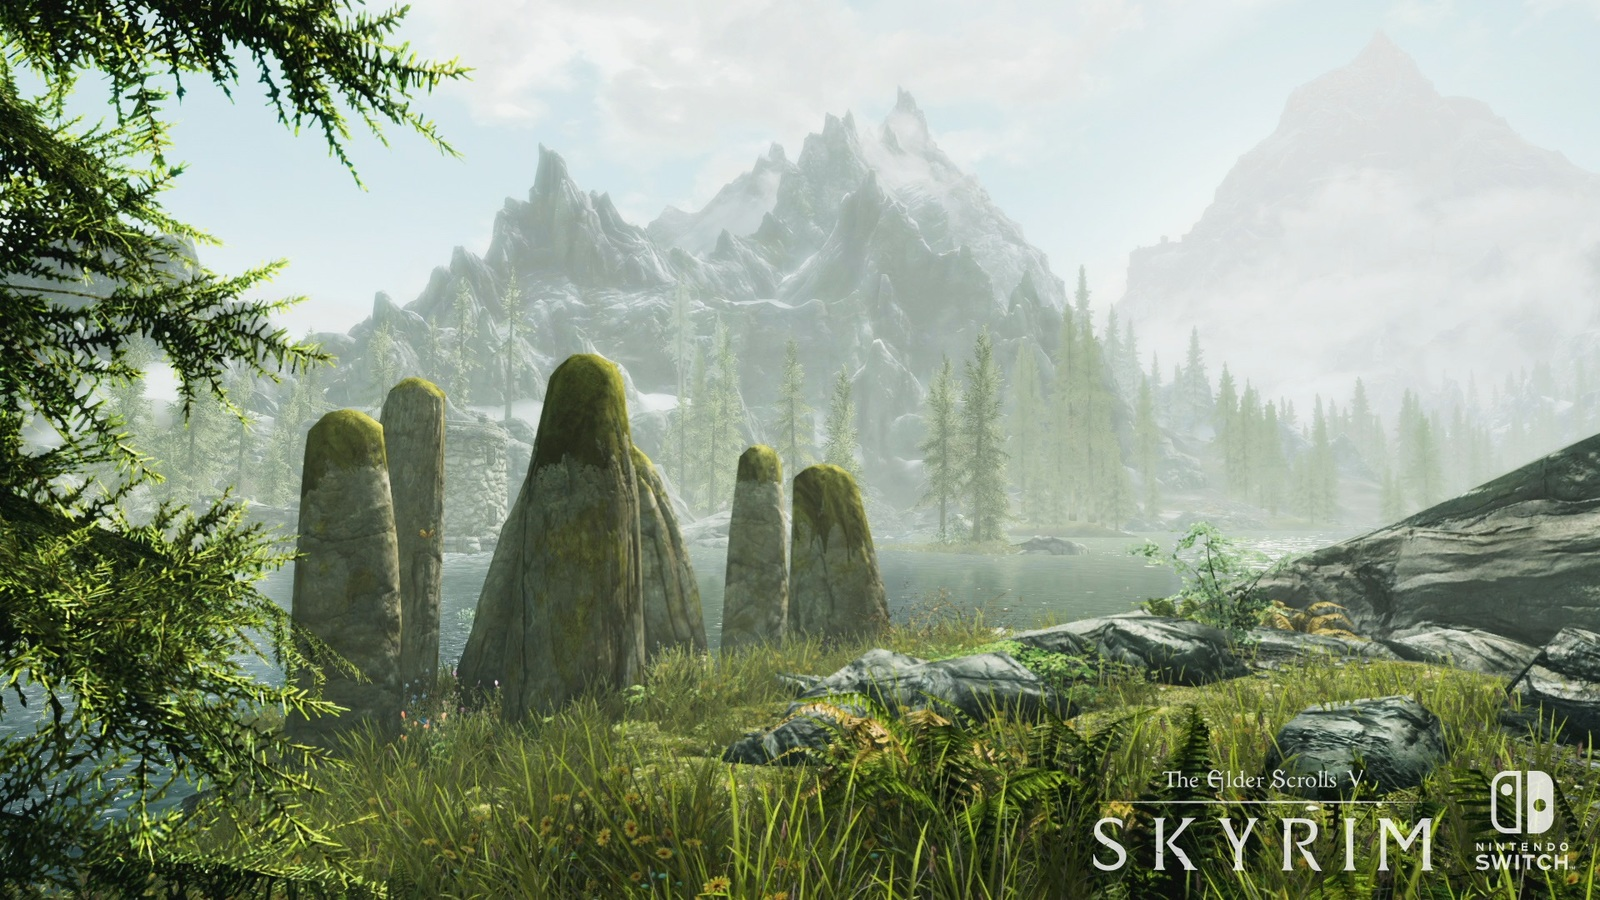 The Elder Scrolls V: Skyrim for Nintendo Switch image